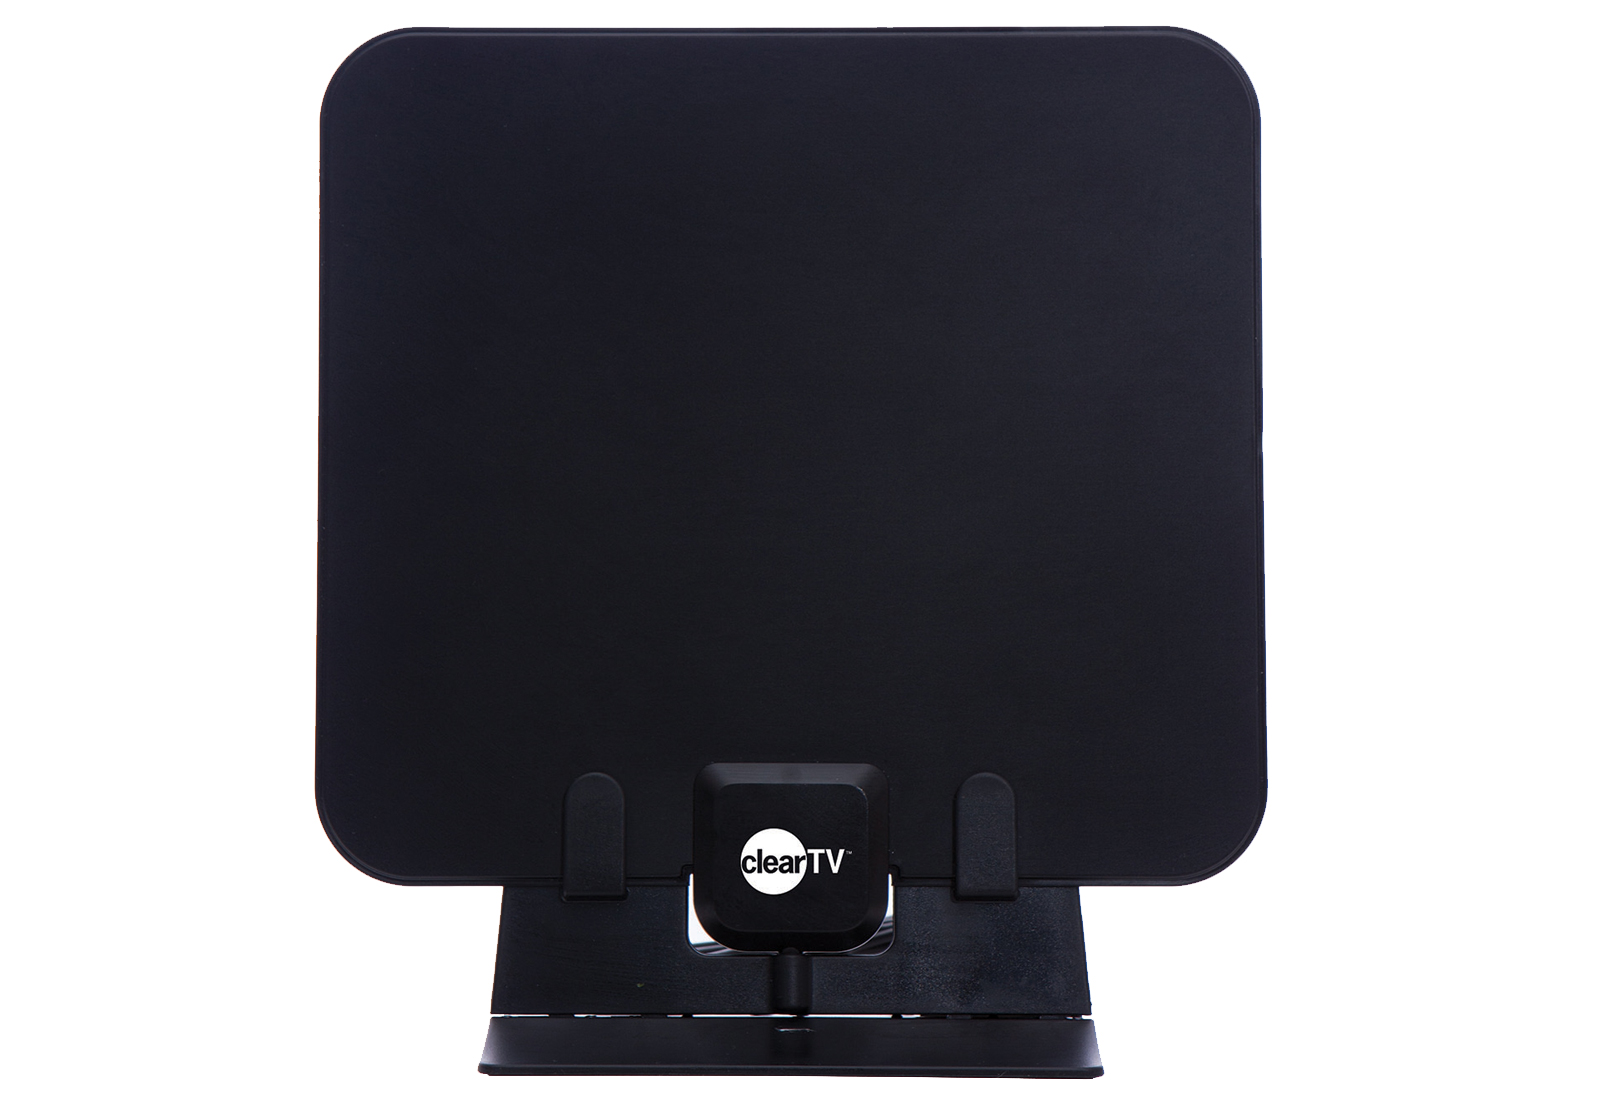 Clear TV X72 Product Image